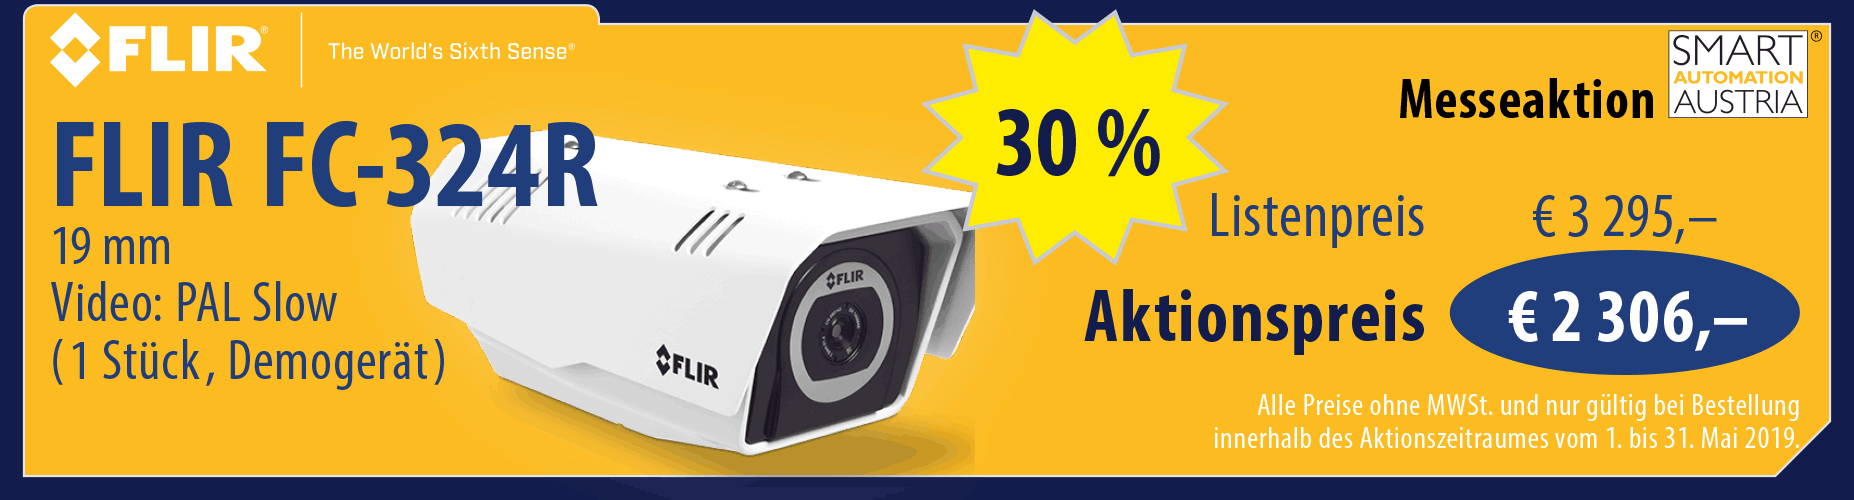 SMART Messeaktion 2019 - FLIR FC-324R